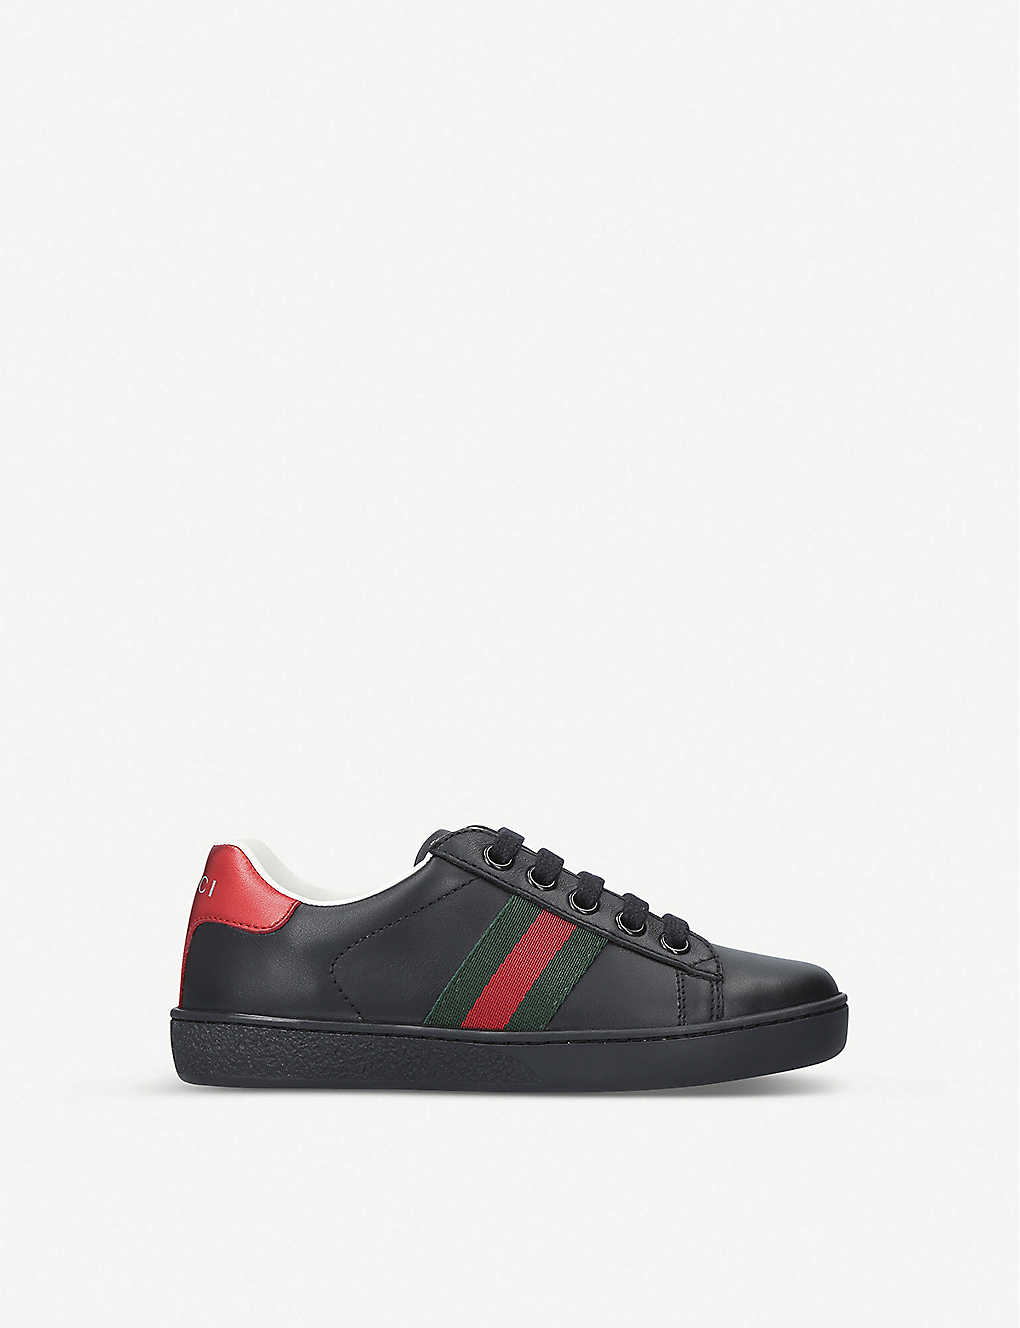 GUCCI: New Ace leather trainers 5-8 years